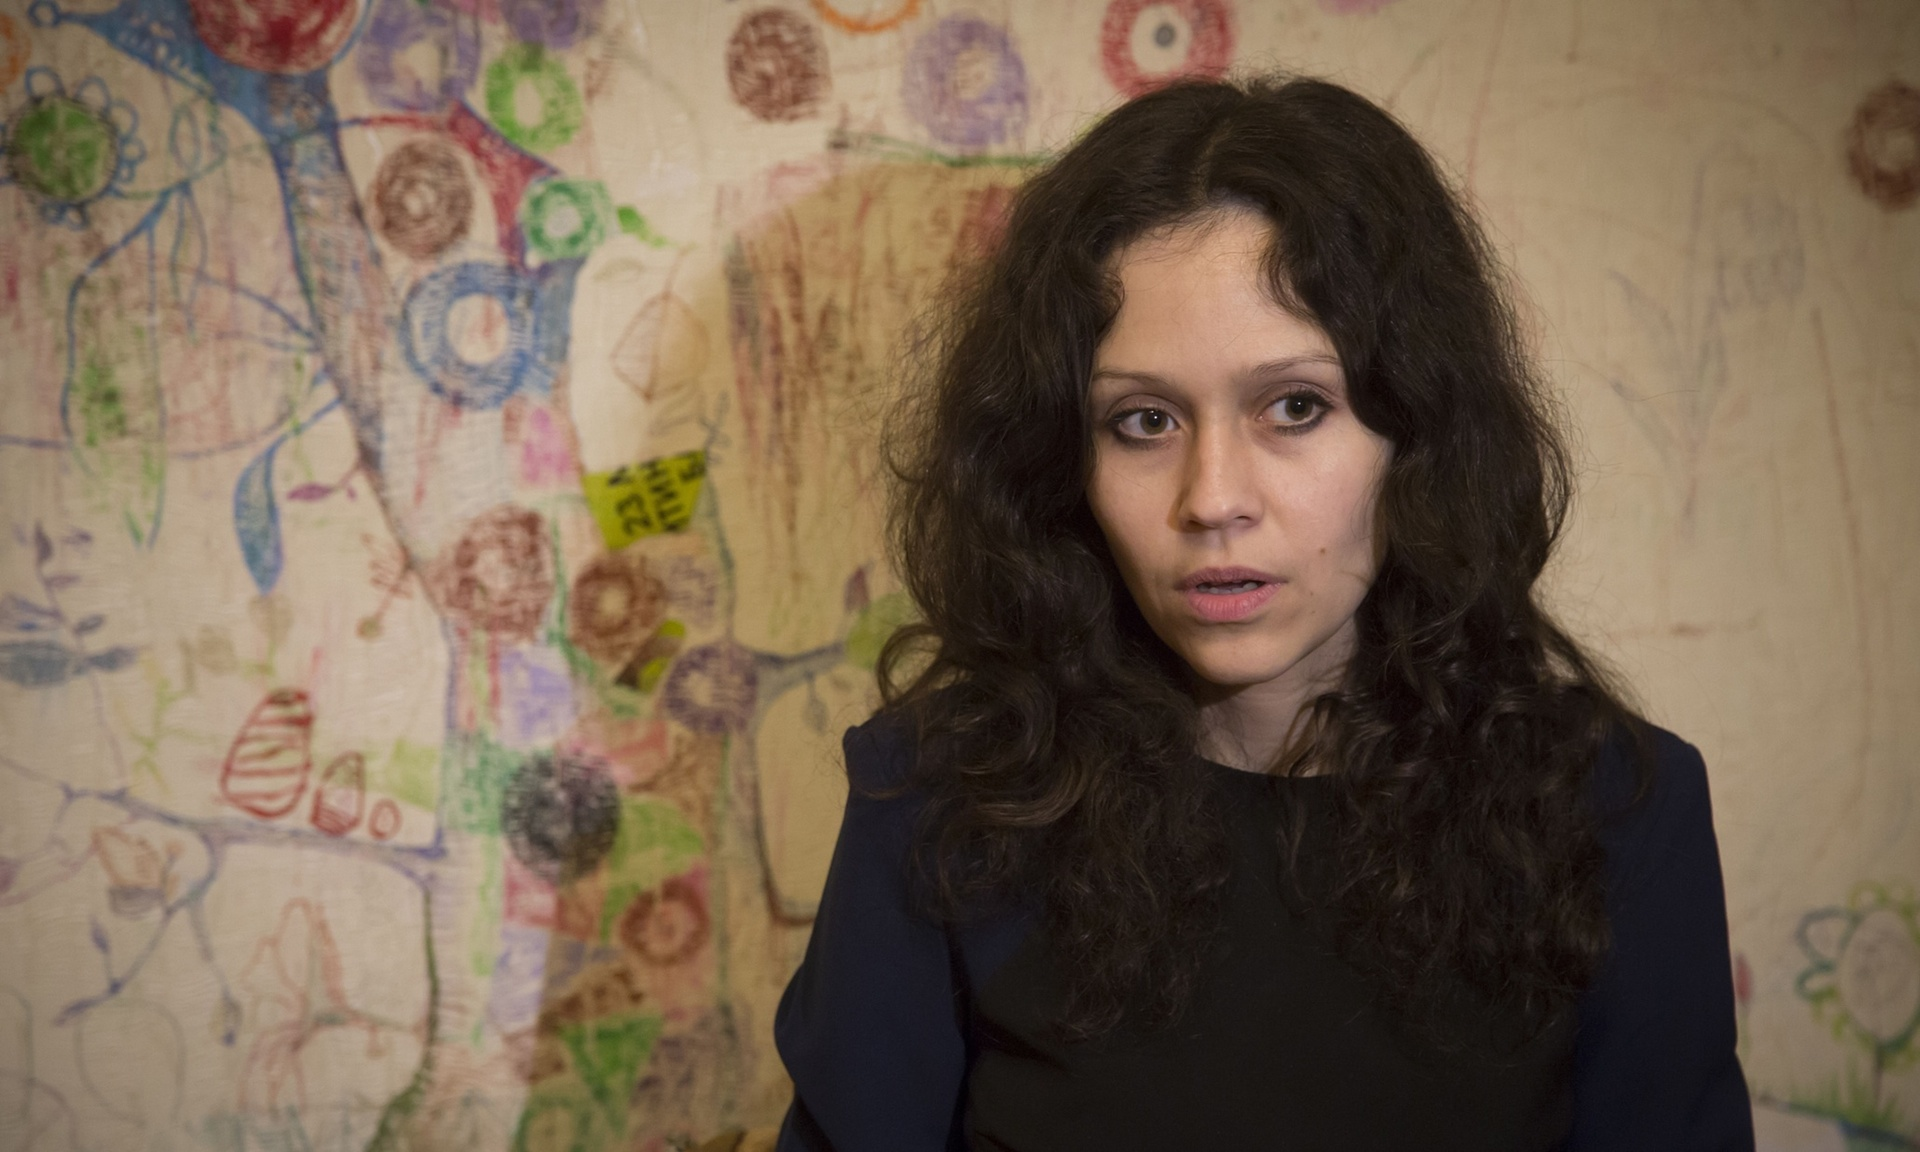 Lyudmila Savchuk, who worked at the trolling factory for two months. Photograph: Dmitry Lovetsky/AP